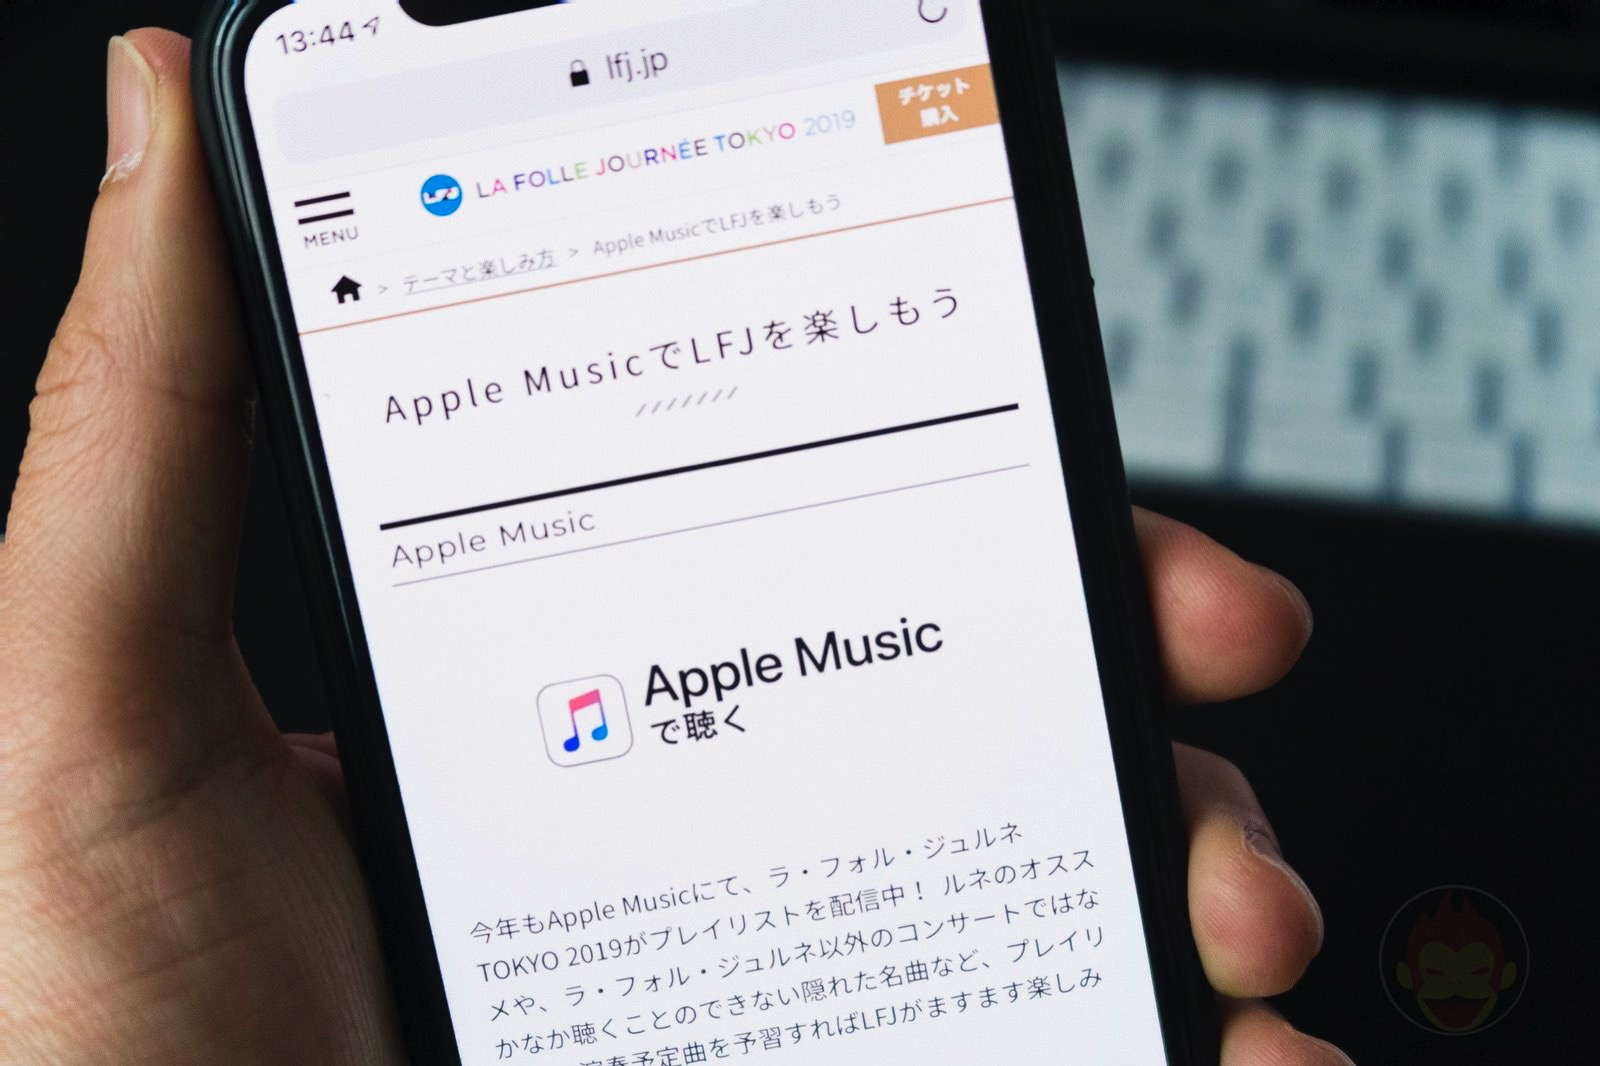 Apple Music Free Code 01